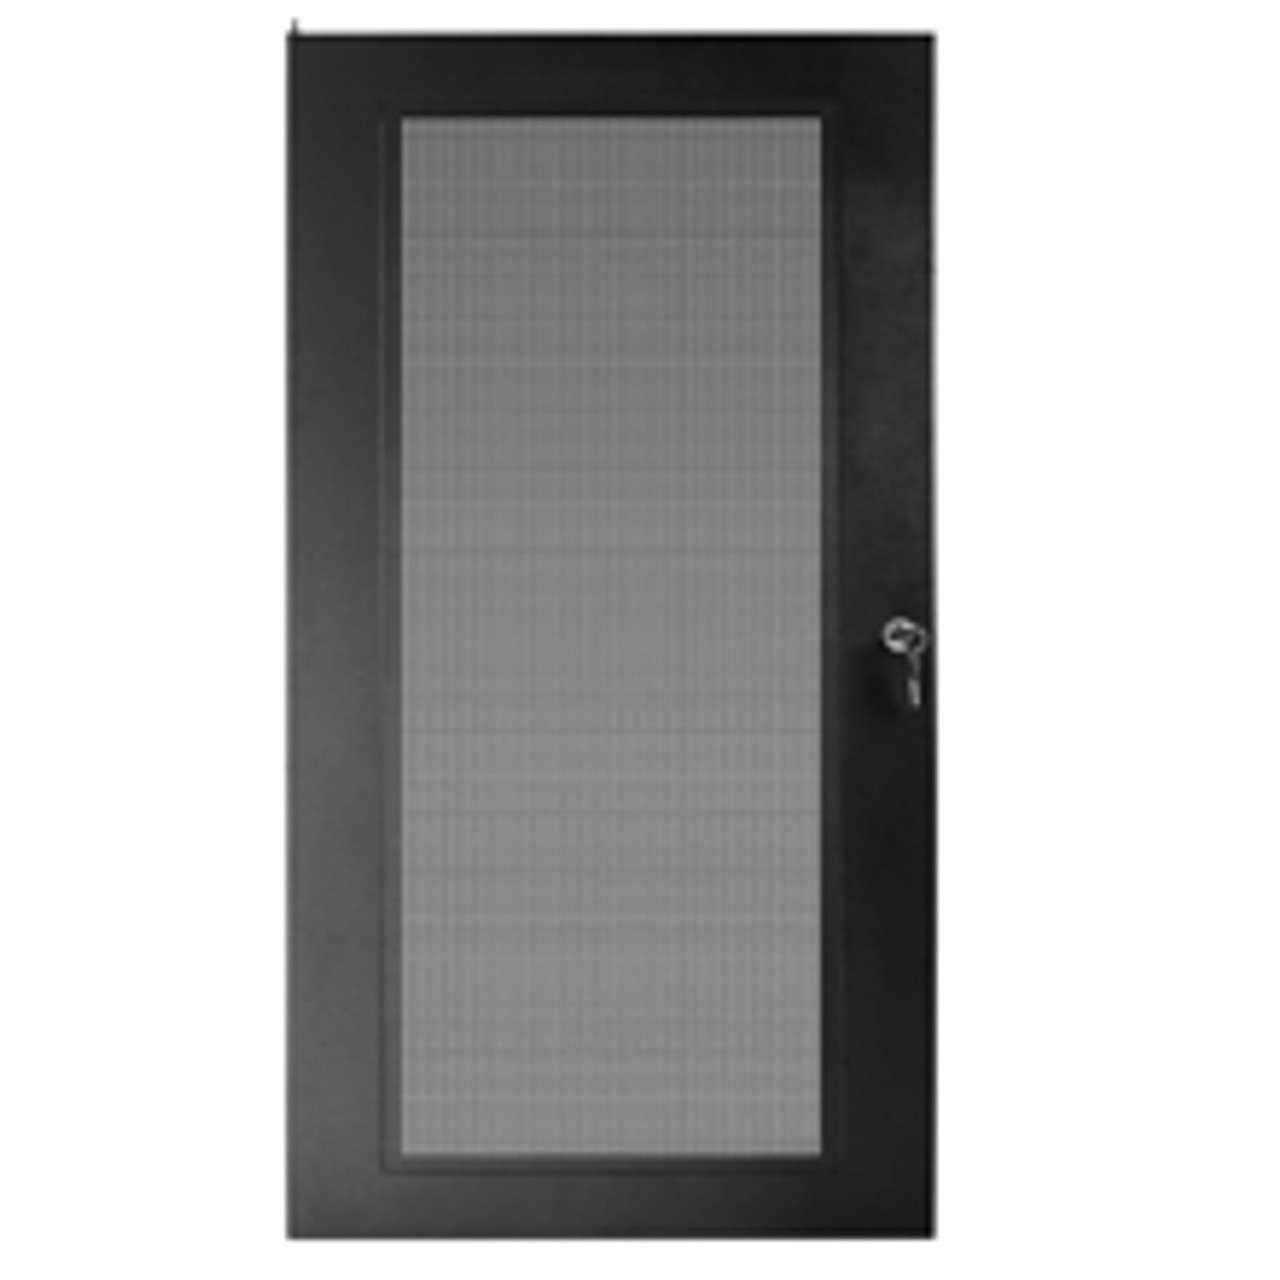 ROY16UDOOR - Royal Racks™ 16u Door for ROY2213